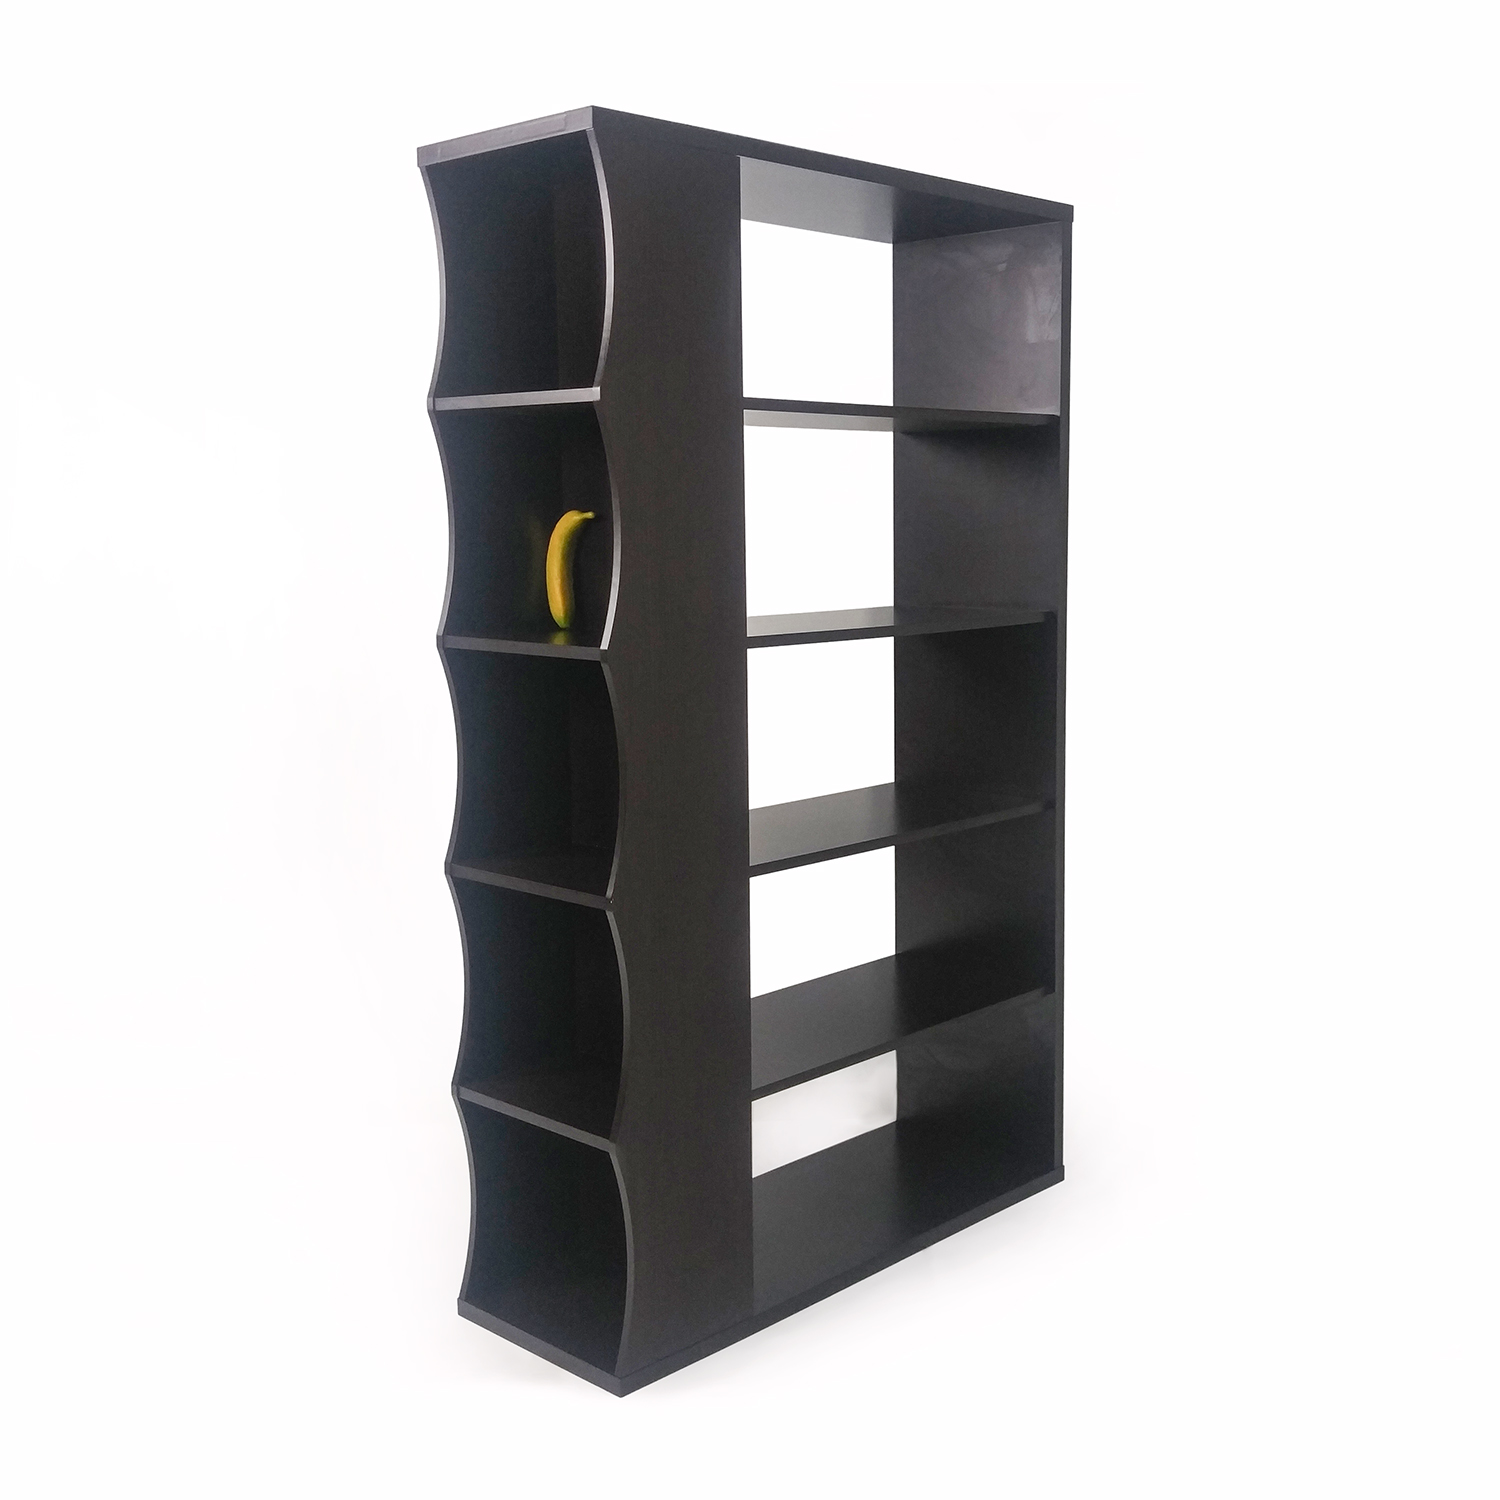 shop Tall Bookshelf Furniture of America Bookcases & Shelving